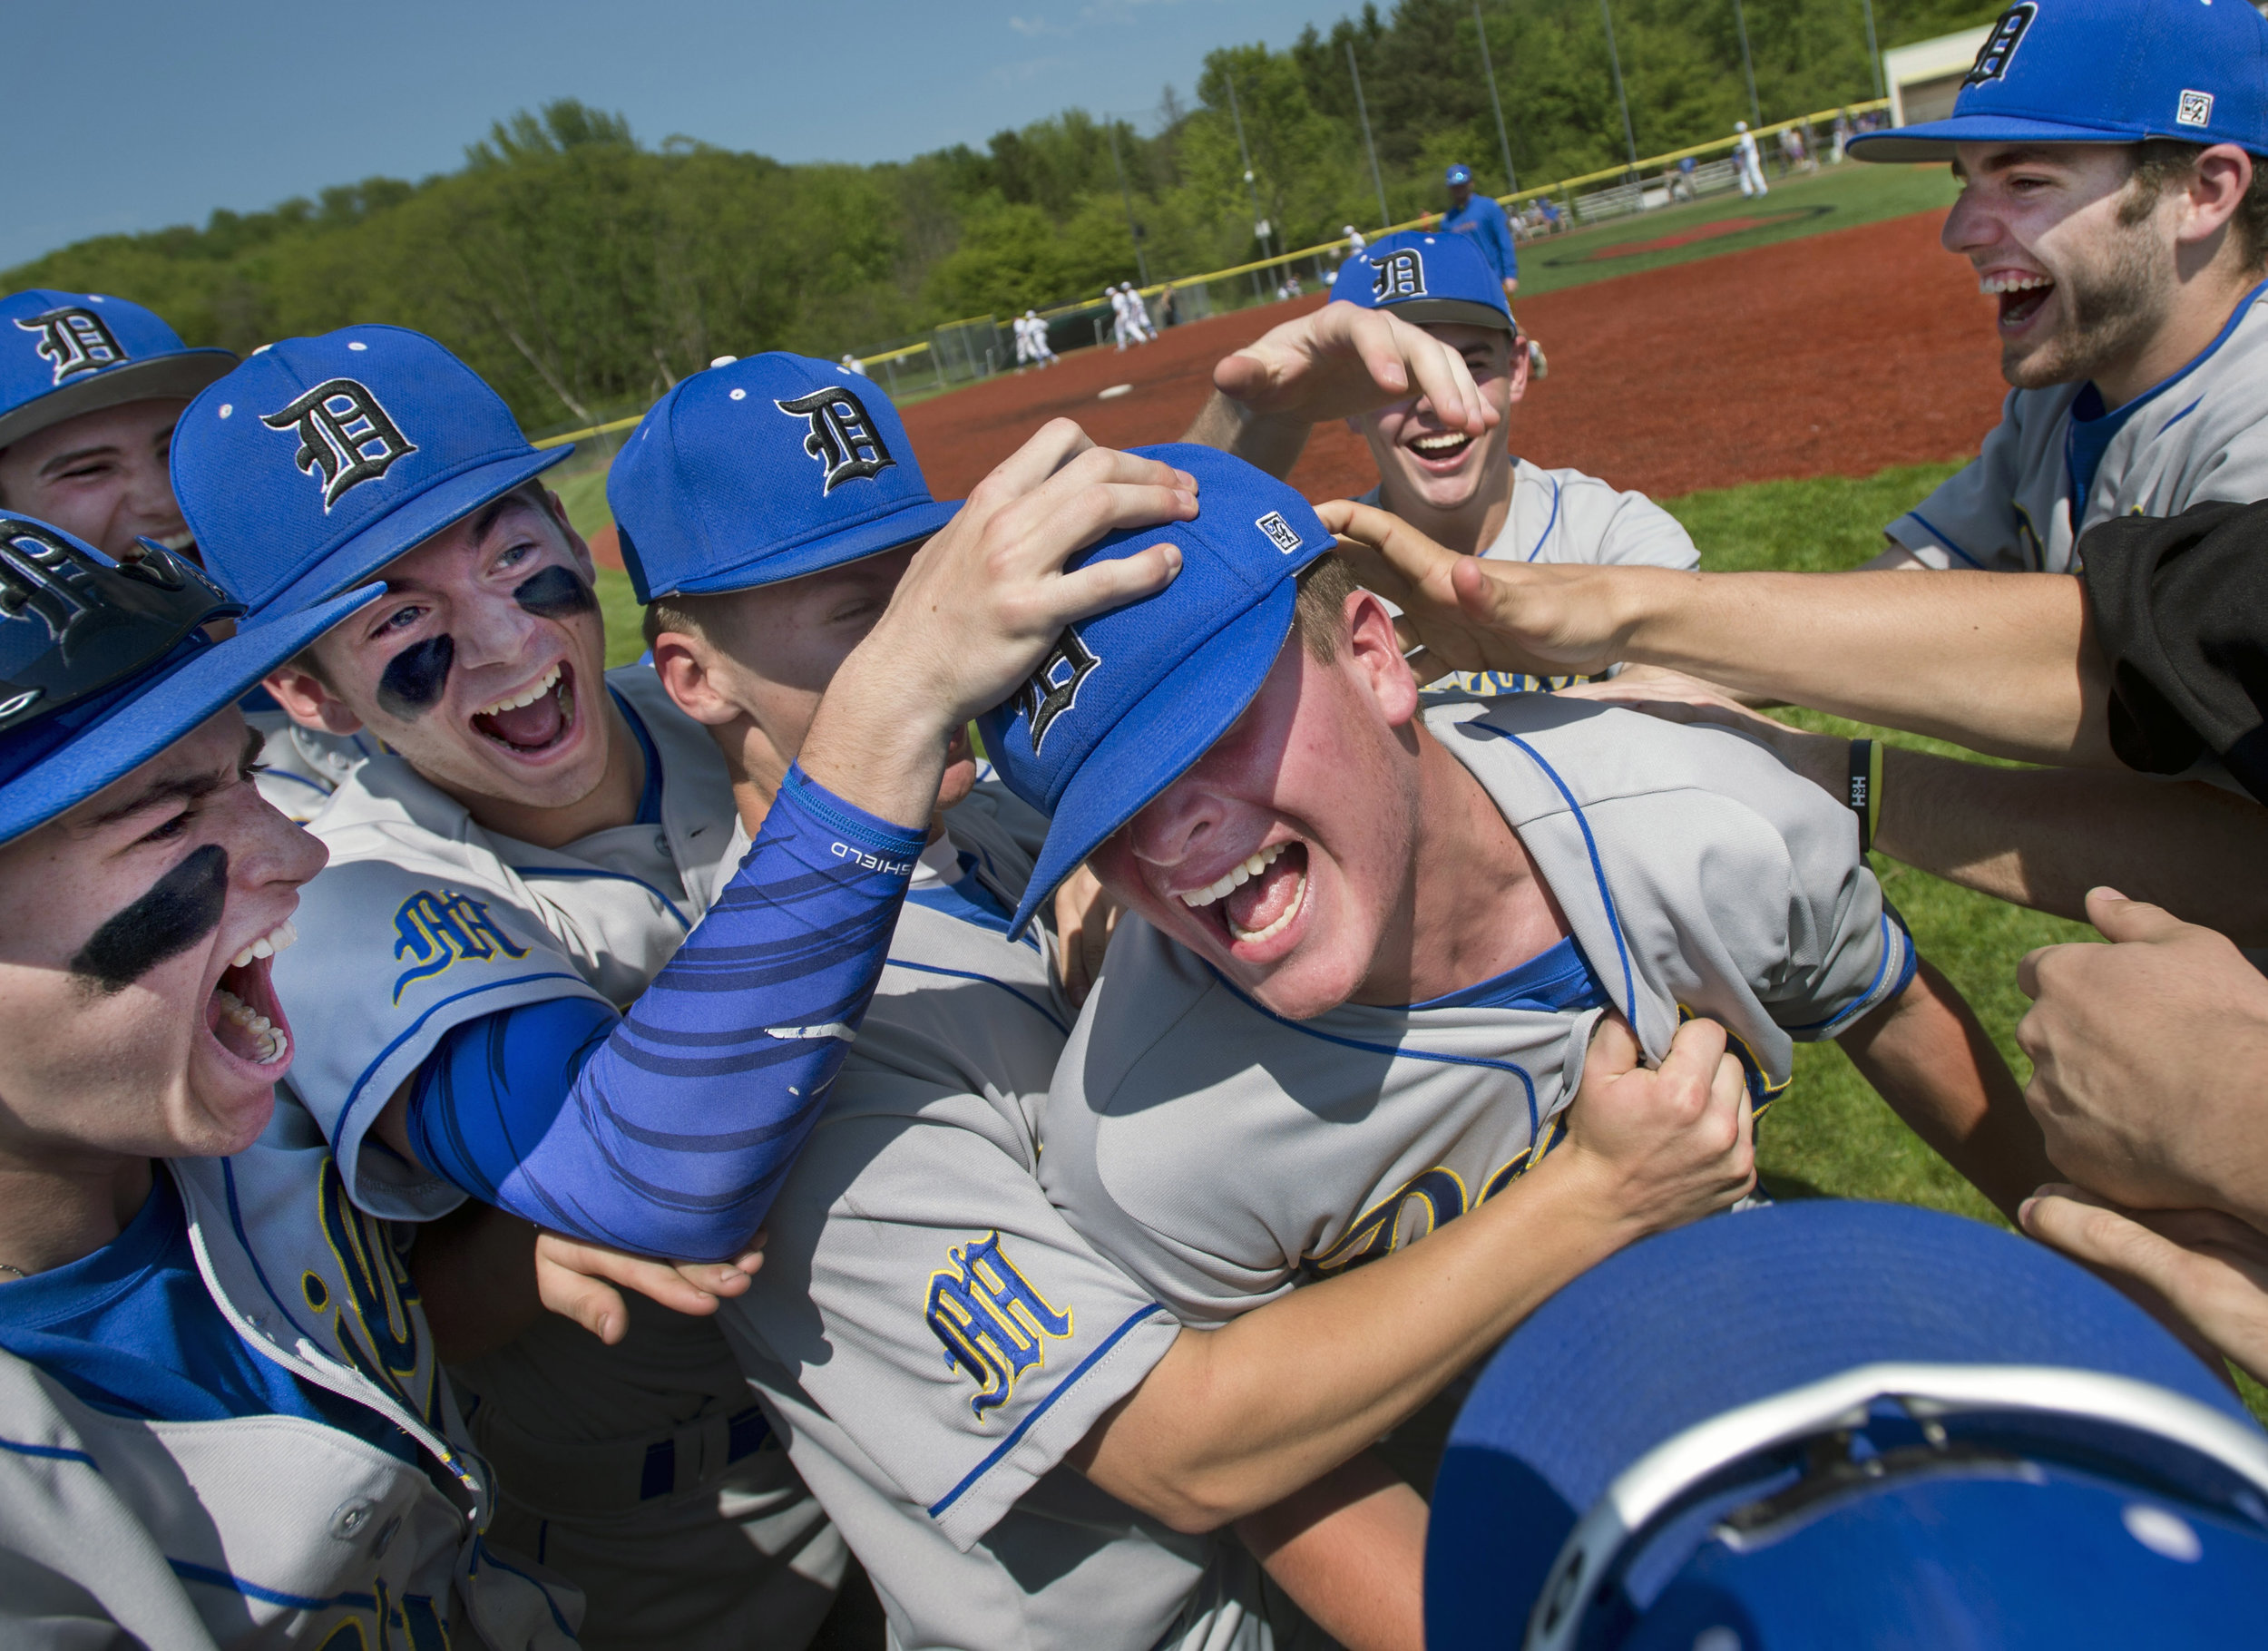 Mt. Lebanon's pitcher Mark Linkowski, center, is bombarded by teammates after recording a no hitter against Hempfield on Tuesday, May 16, 2017 at Fox Chapel High School. Mt. Lebanon won 5-0. (Steph Chambers/Post-Gazette)